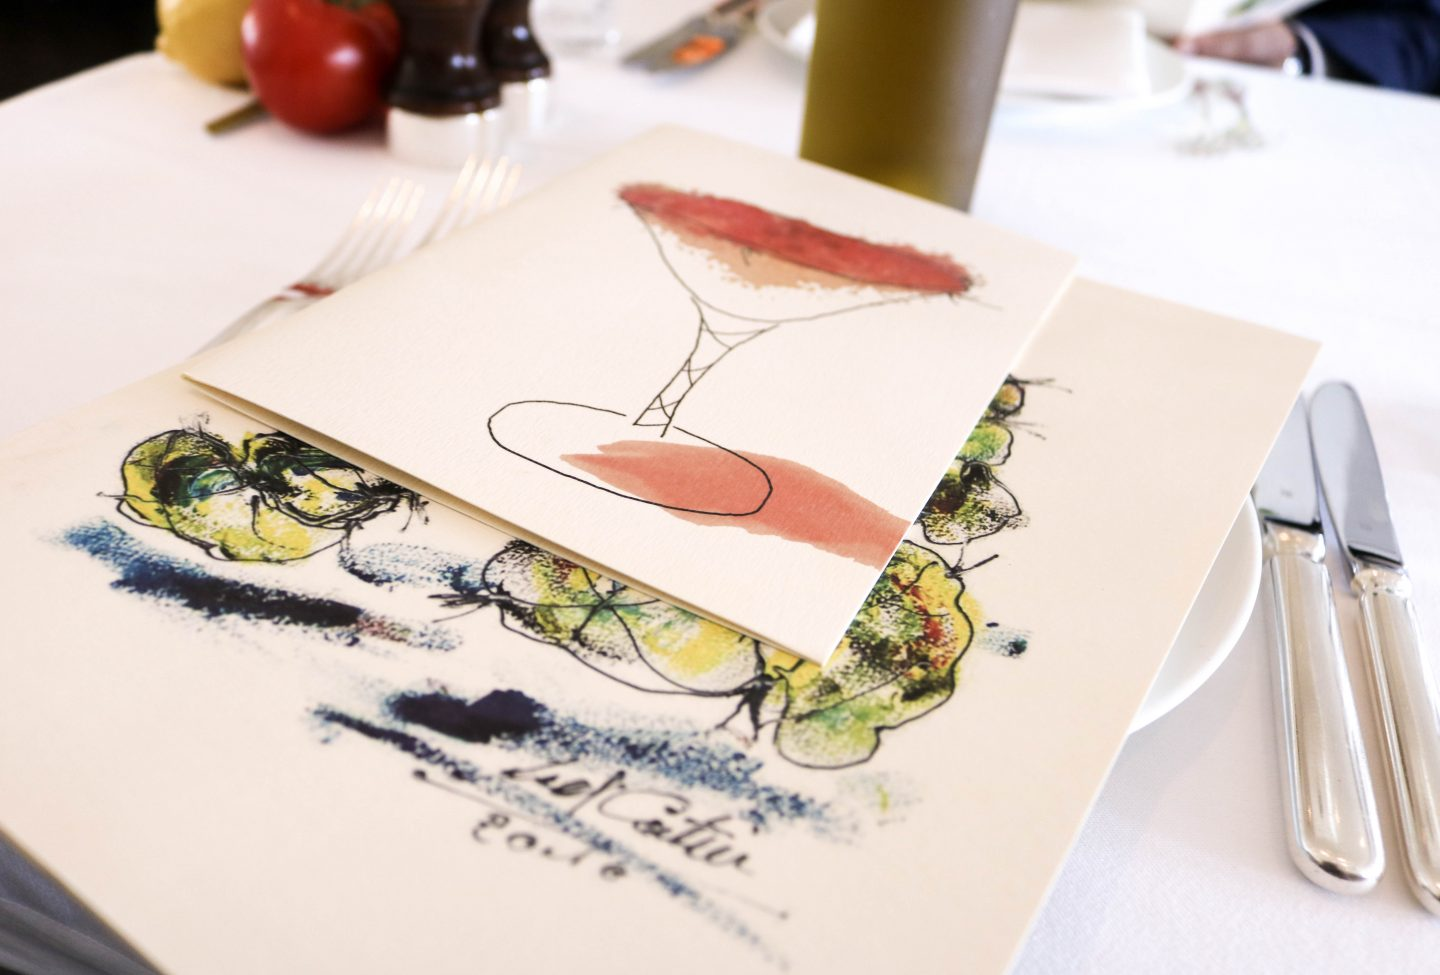 Menu at La Petite Maison, the best restaurant for lunch in Dubai on the Lifestyle Enthusiast blog